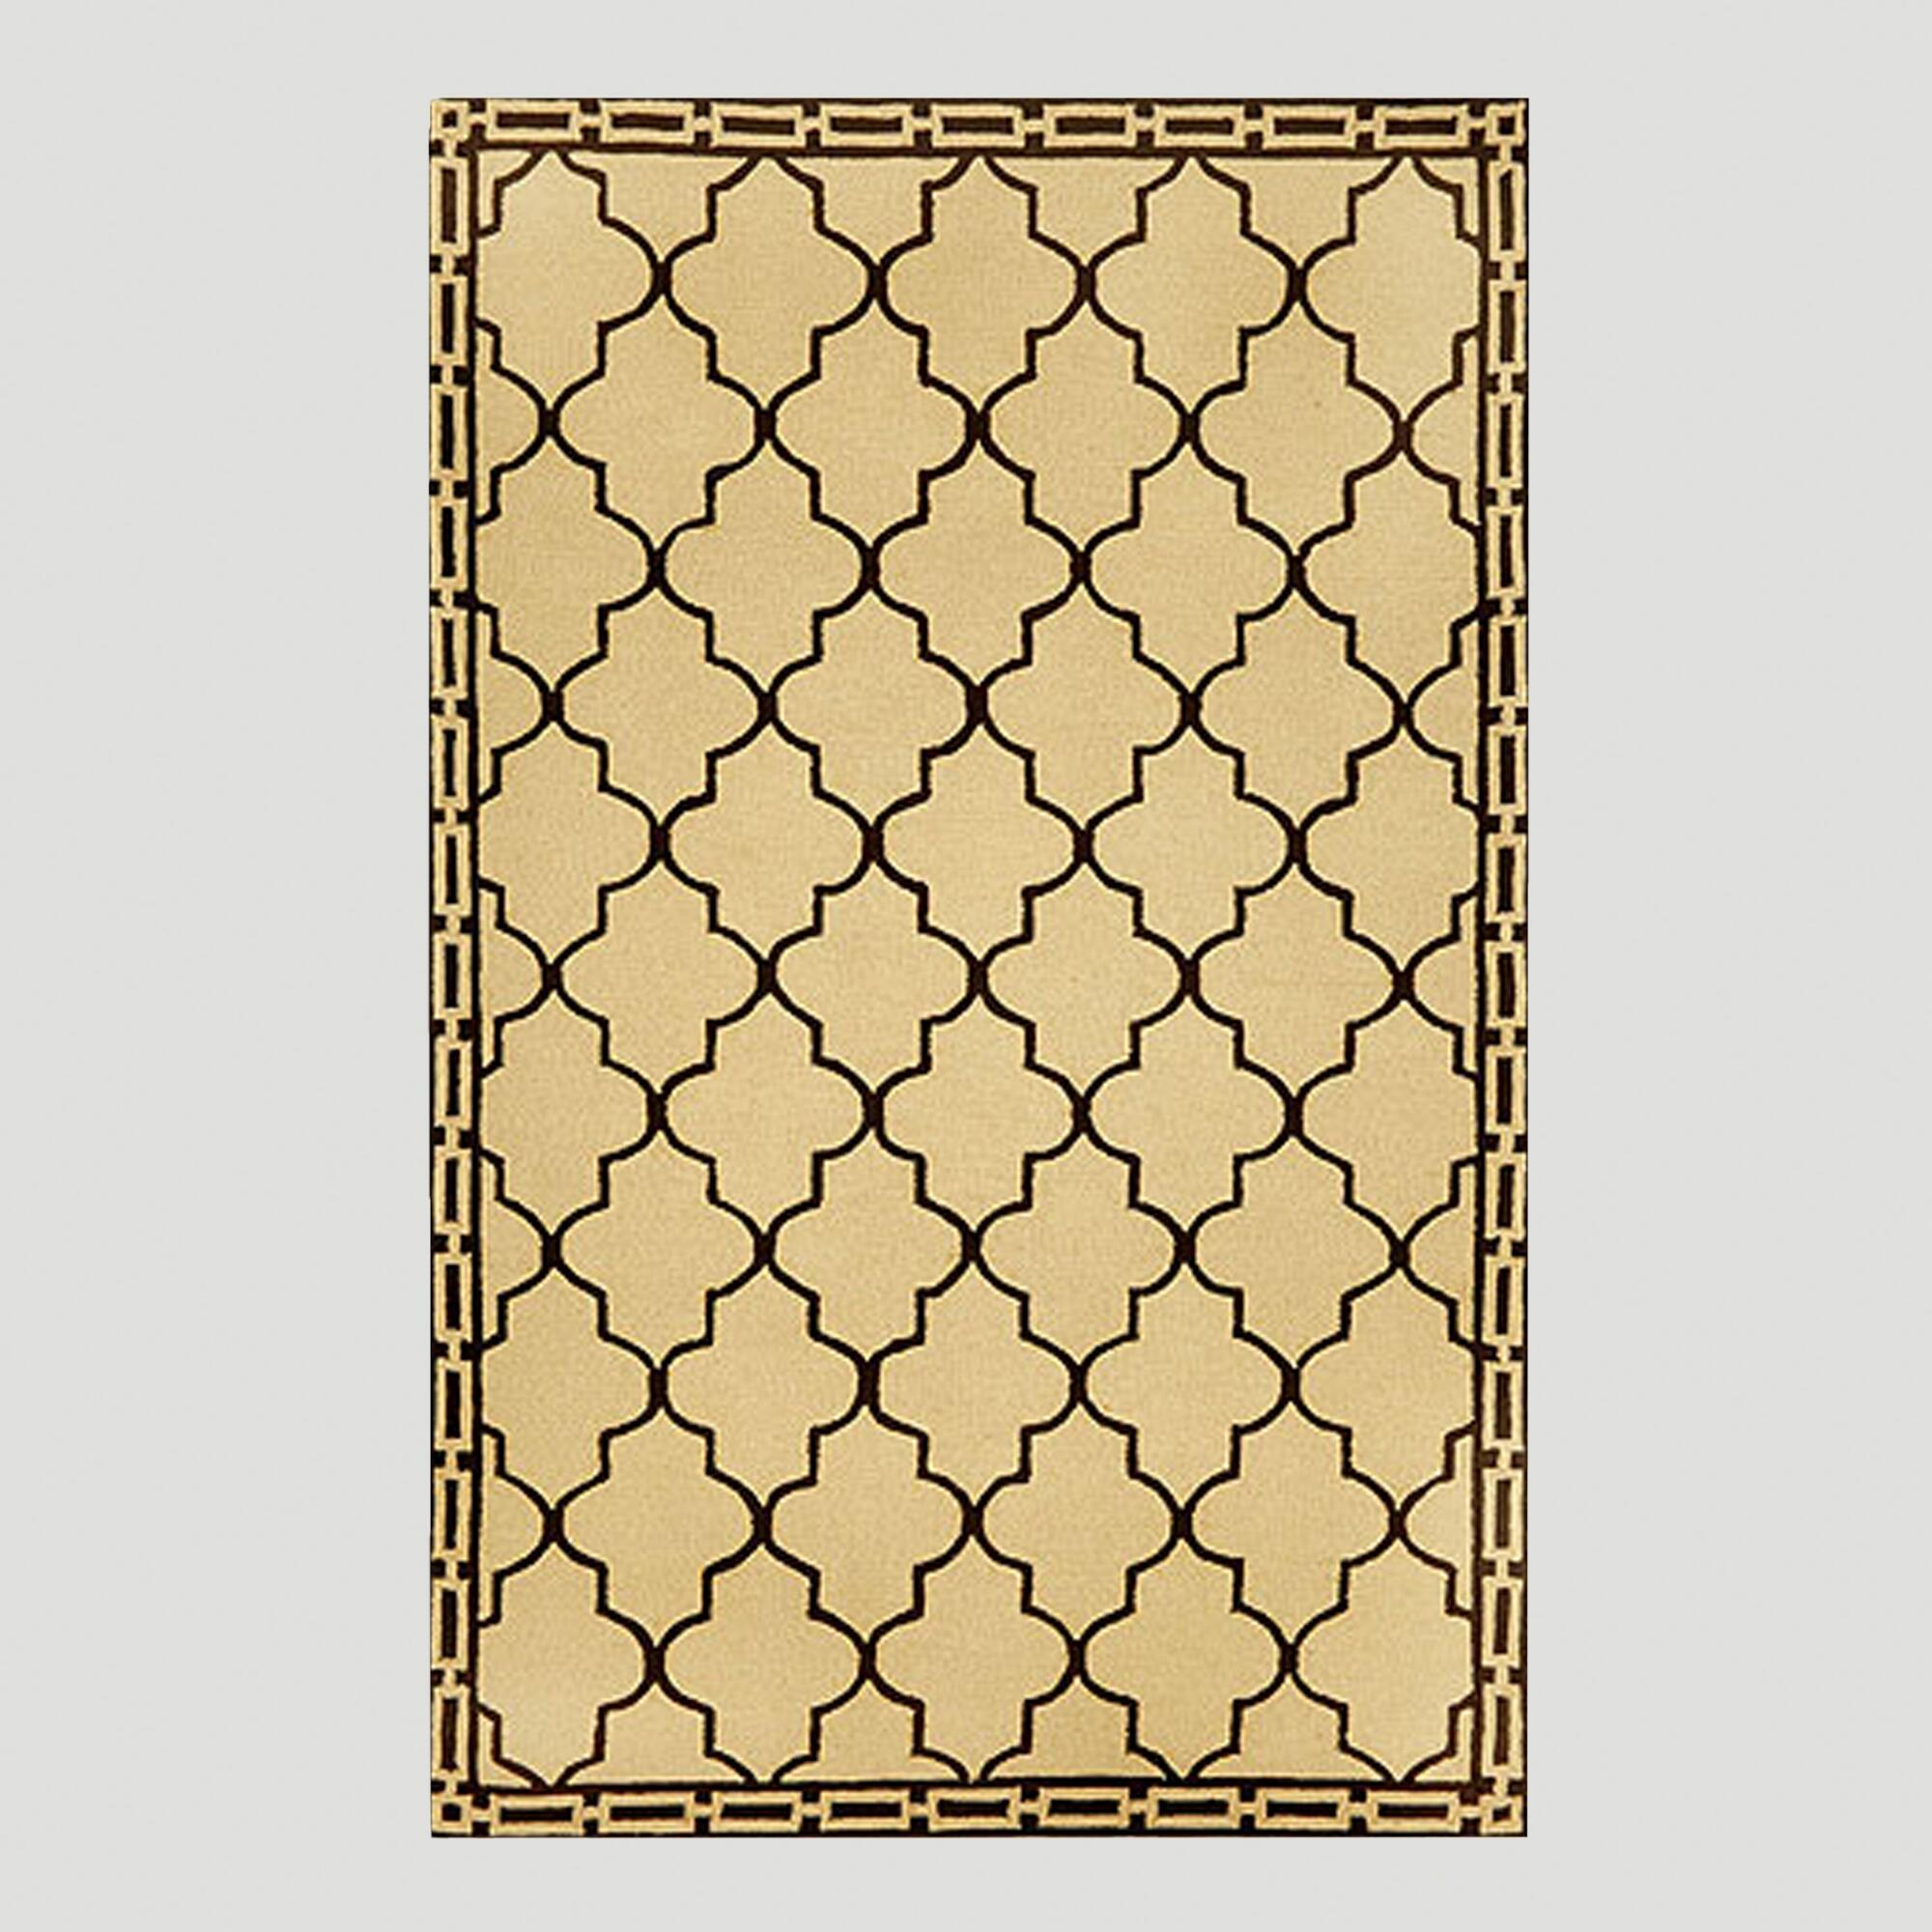 Wheat Floor Tile Indoor-Outdoor Rug | World Market - photo#34